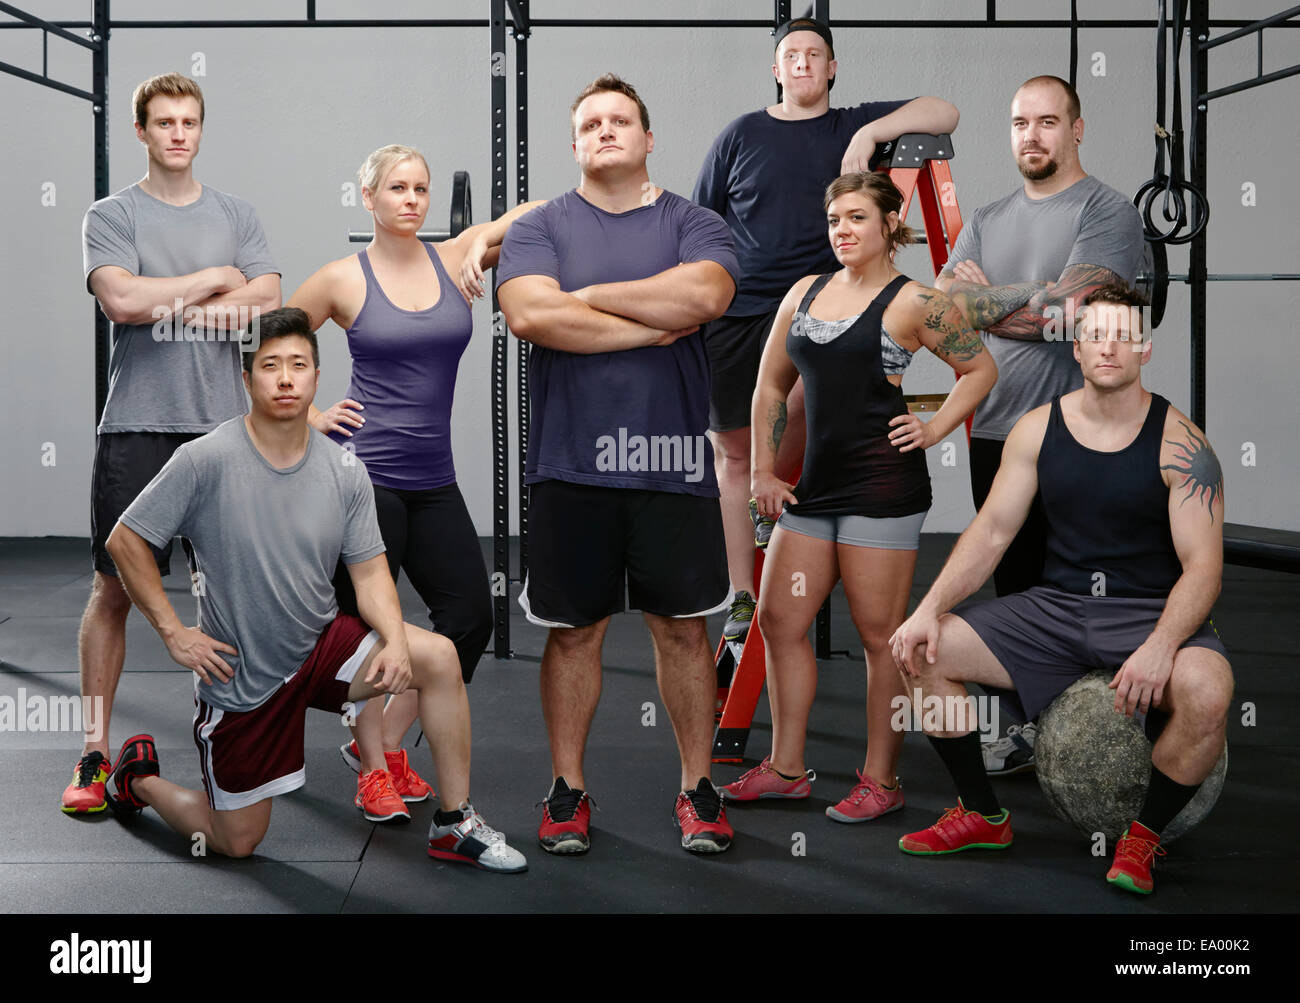 Portrait of eight men and women in gym - Stock Image